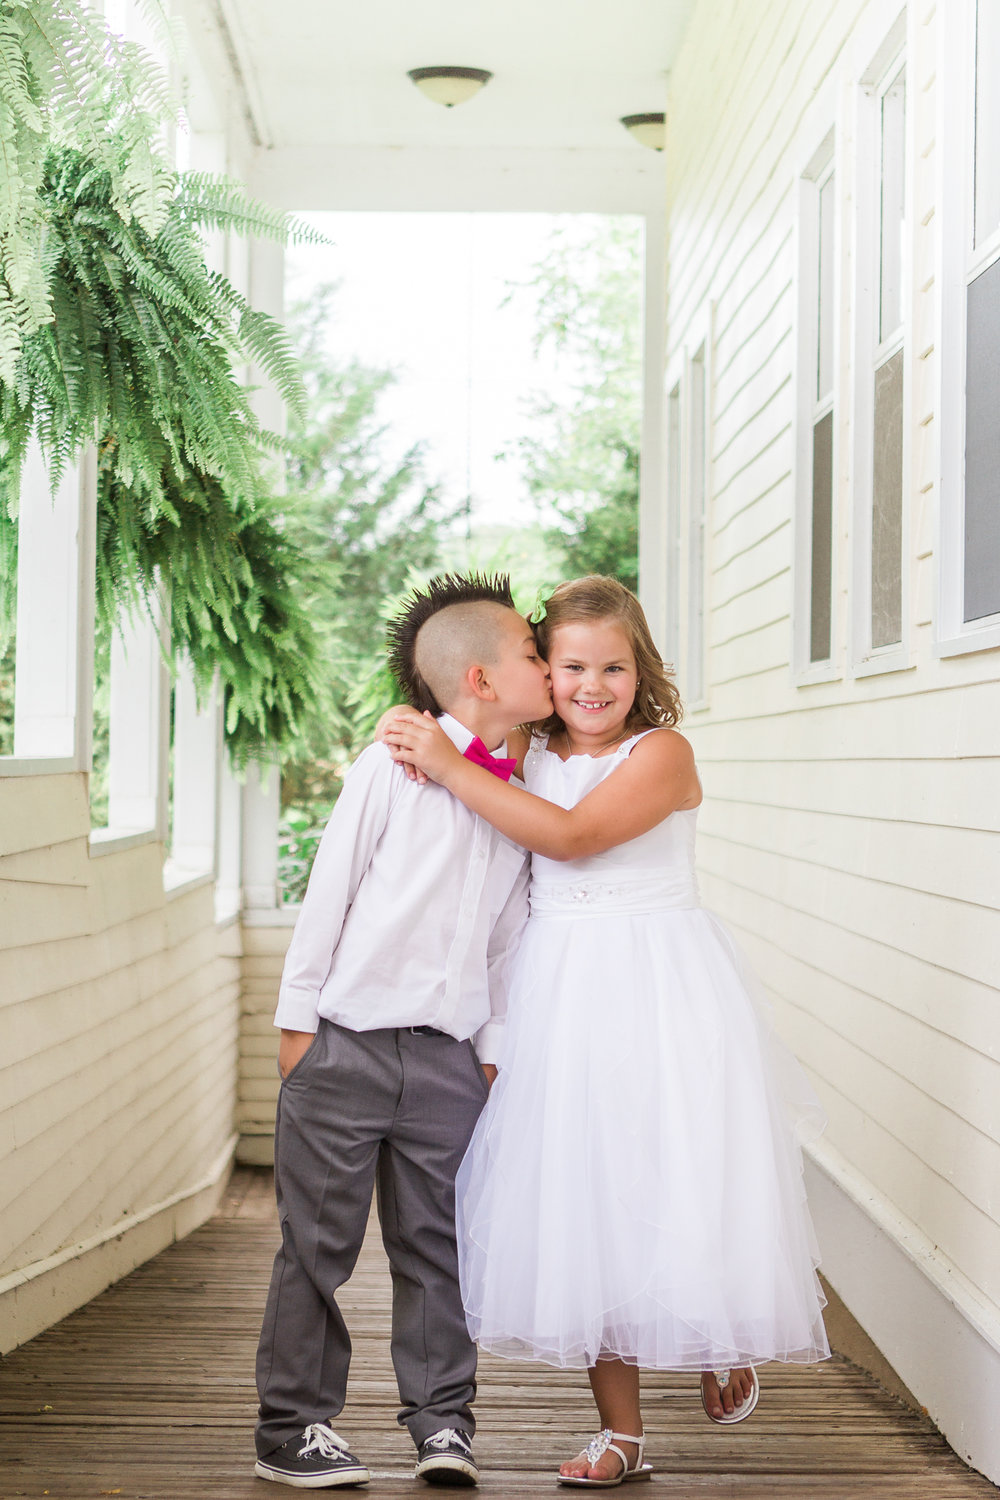 Richmond Kentucky Wedding Photographer - Ariana Jordan Photography -8-2.jpg